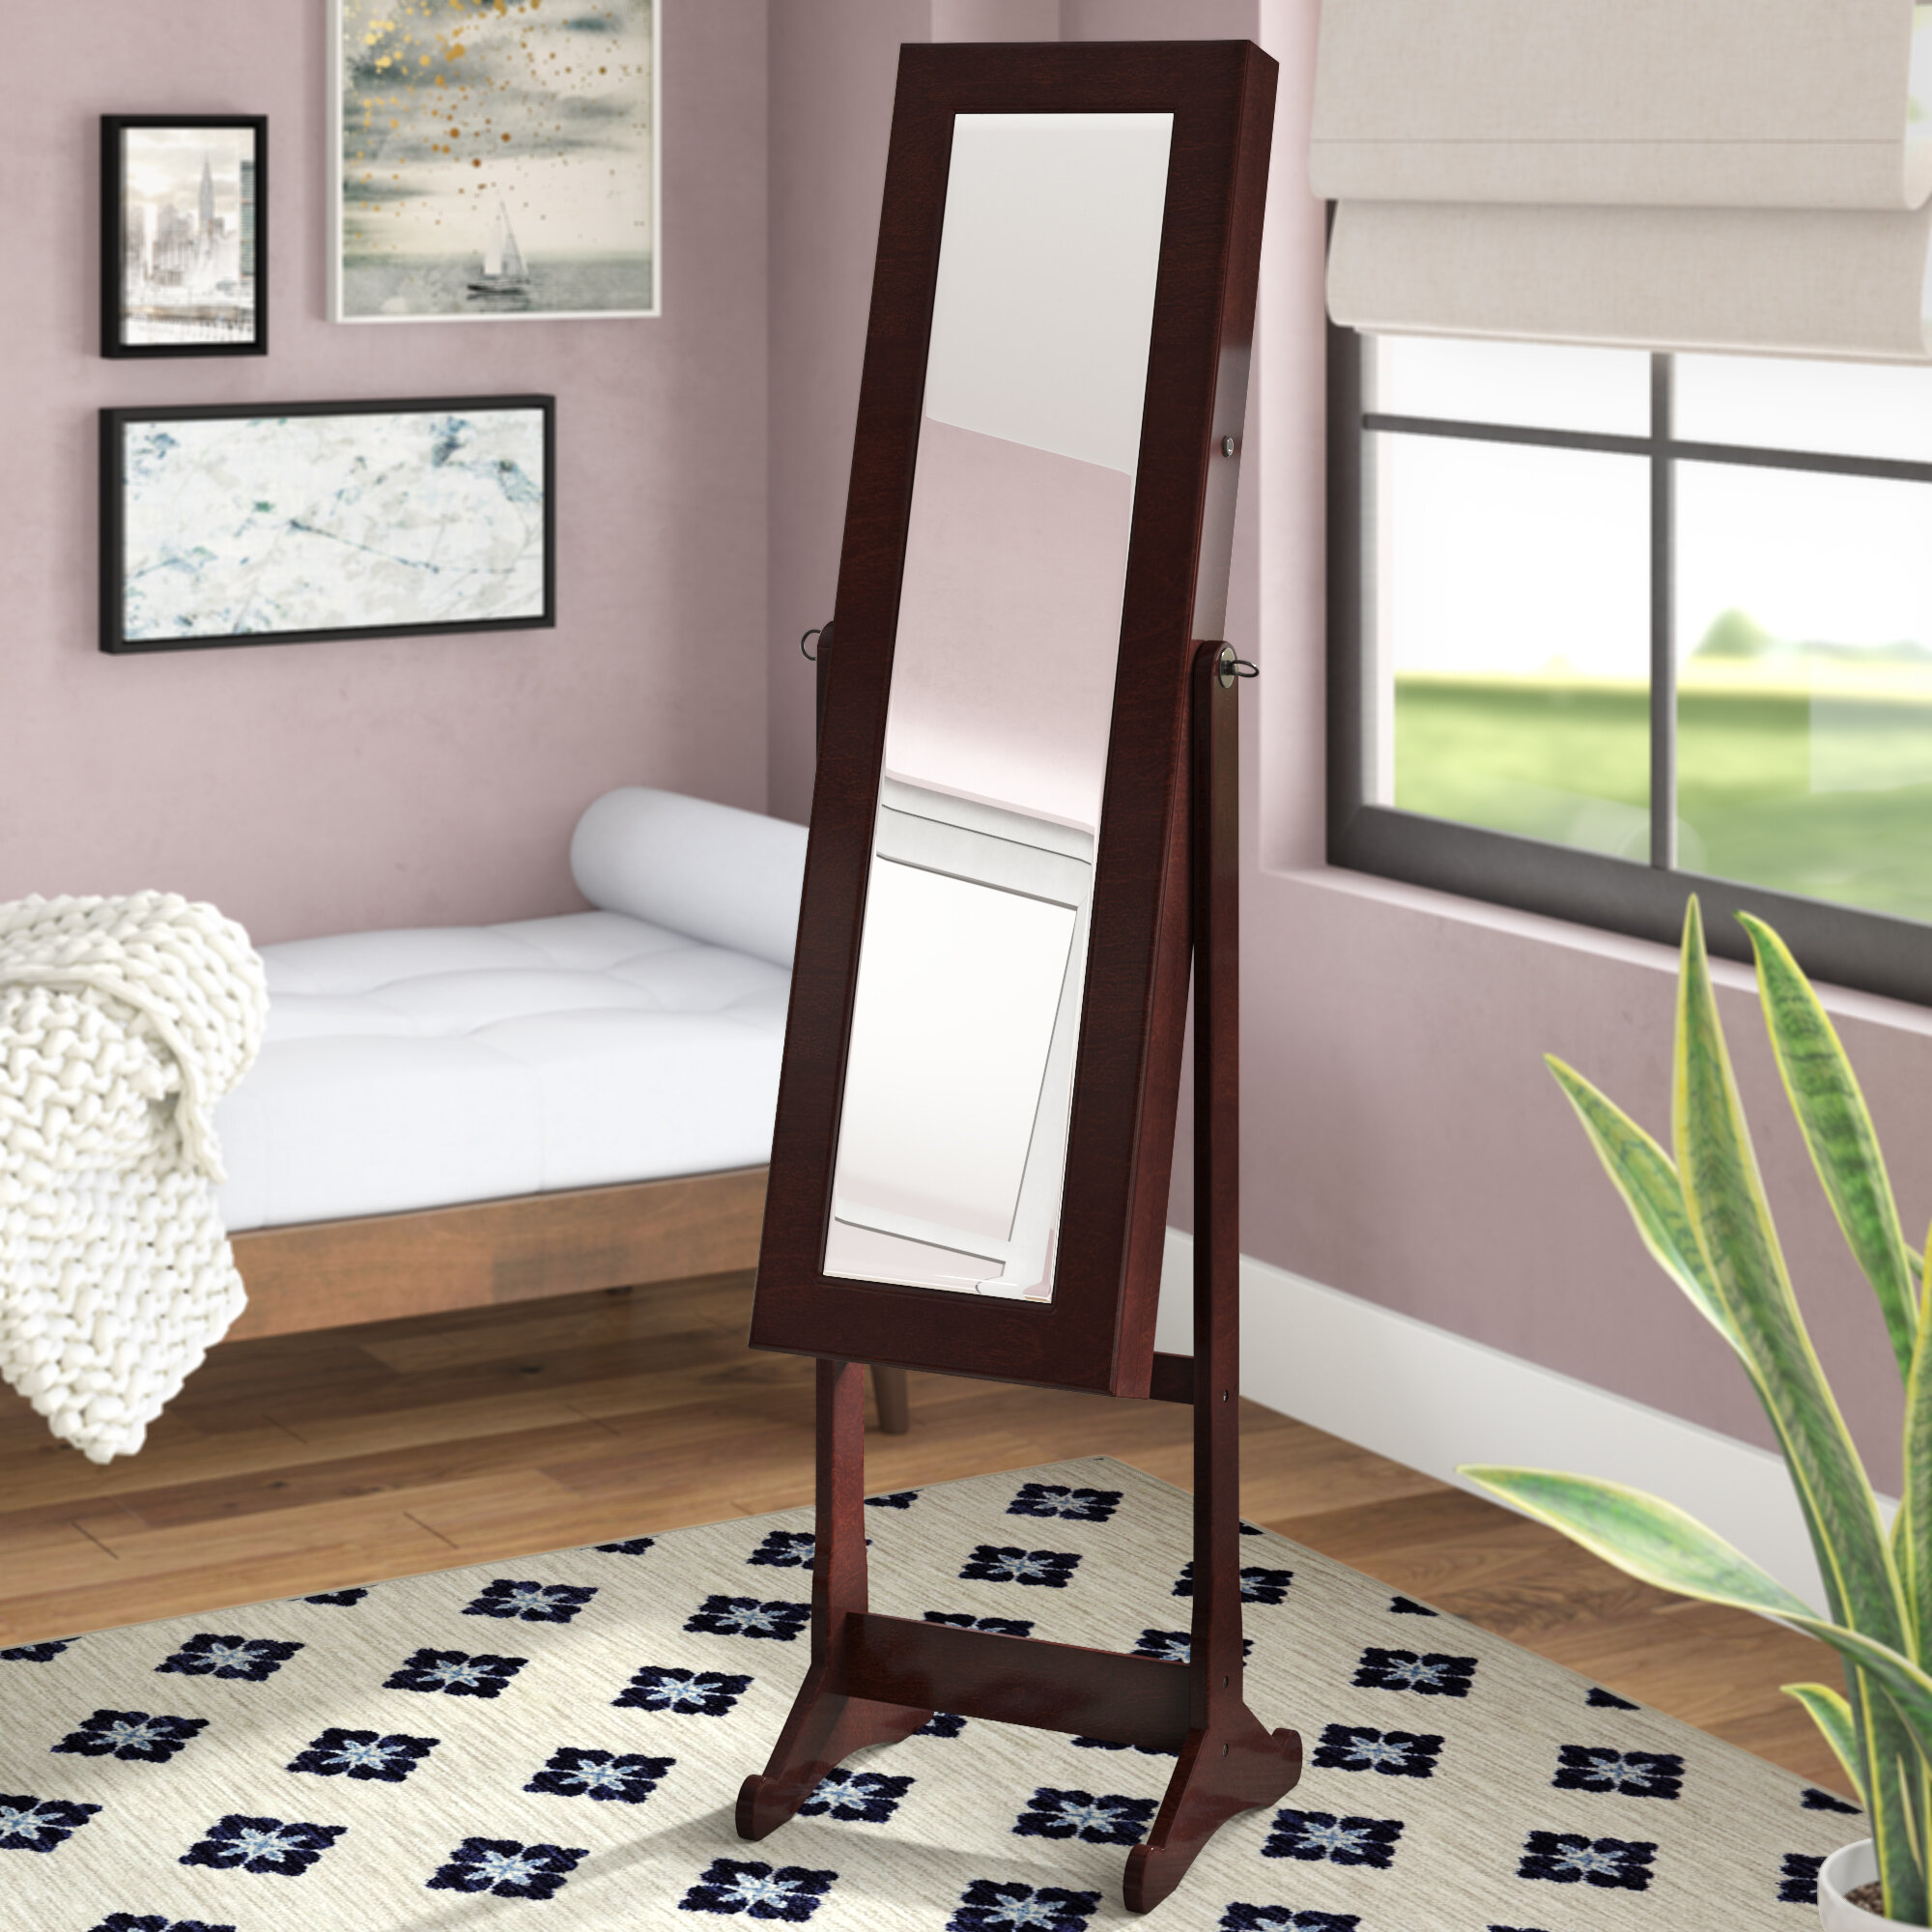 Ivy Bronx Bohr Floor Standing Jewelry Armoire With Mirror And Led